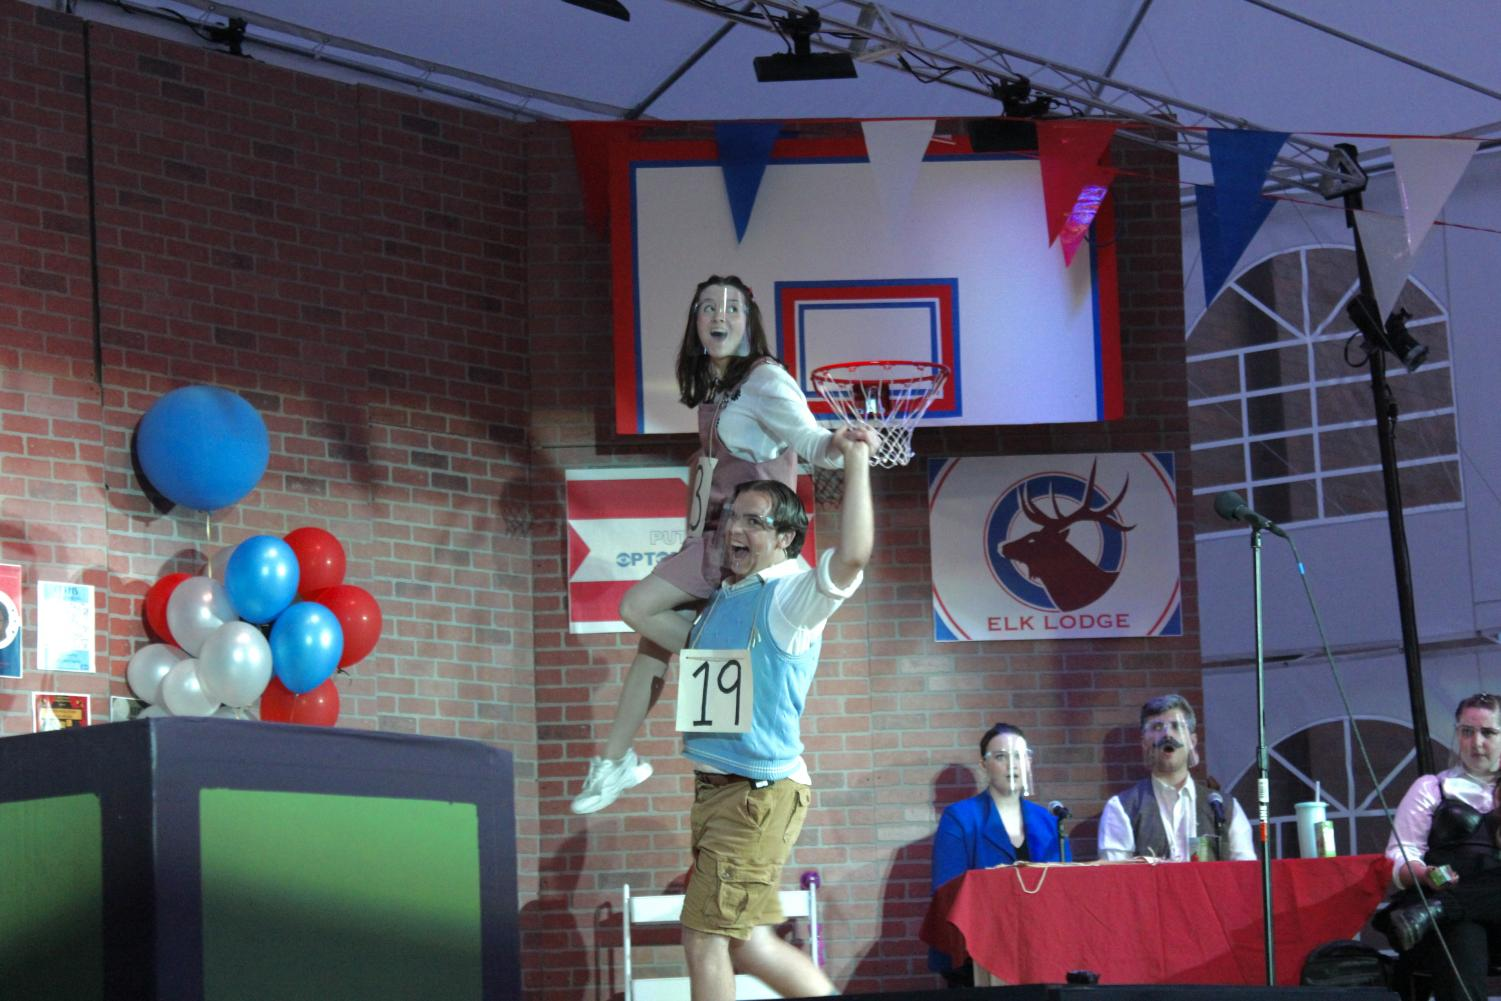 %E2%80%9CThe+25th+Annual+Putnam+County+Spelling+Bee%E2%80%9D+Captured+in+Photos